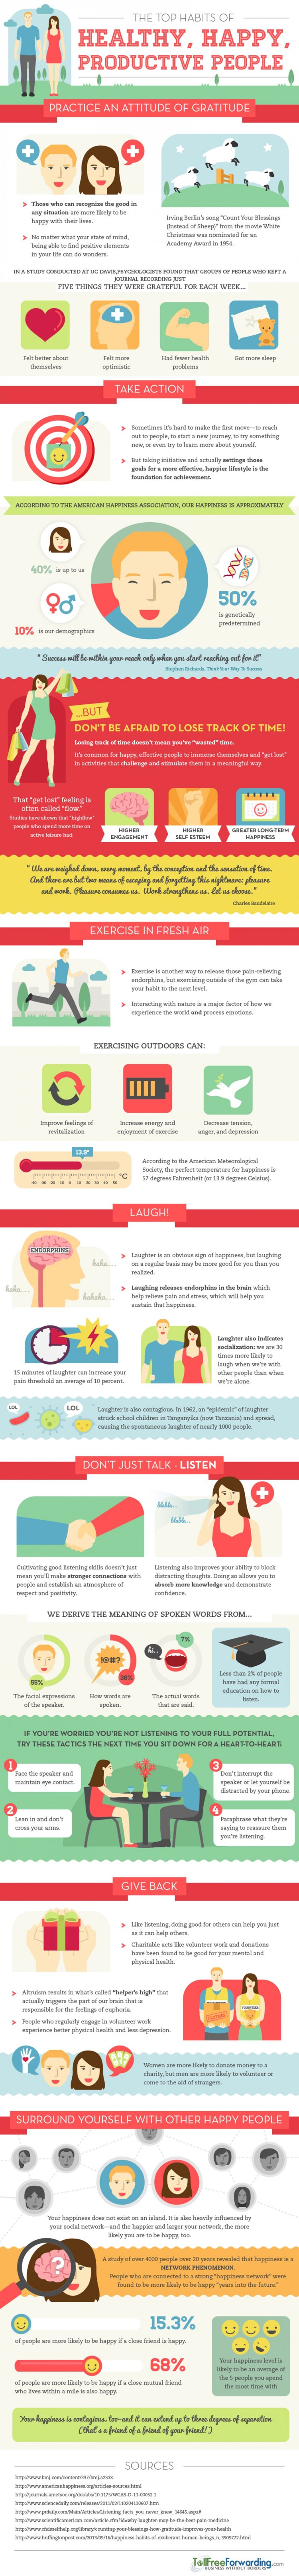 The Top Habits of Healthy, Happy, Productive People: Want to be healthier this year? Happier? More productive? This informative infographic has tips to help you achieve all three! Now set some goals!